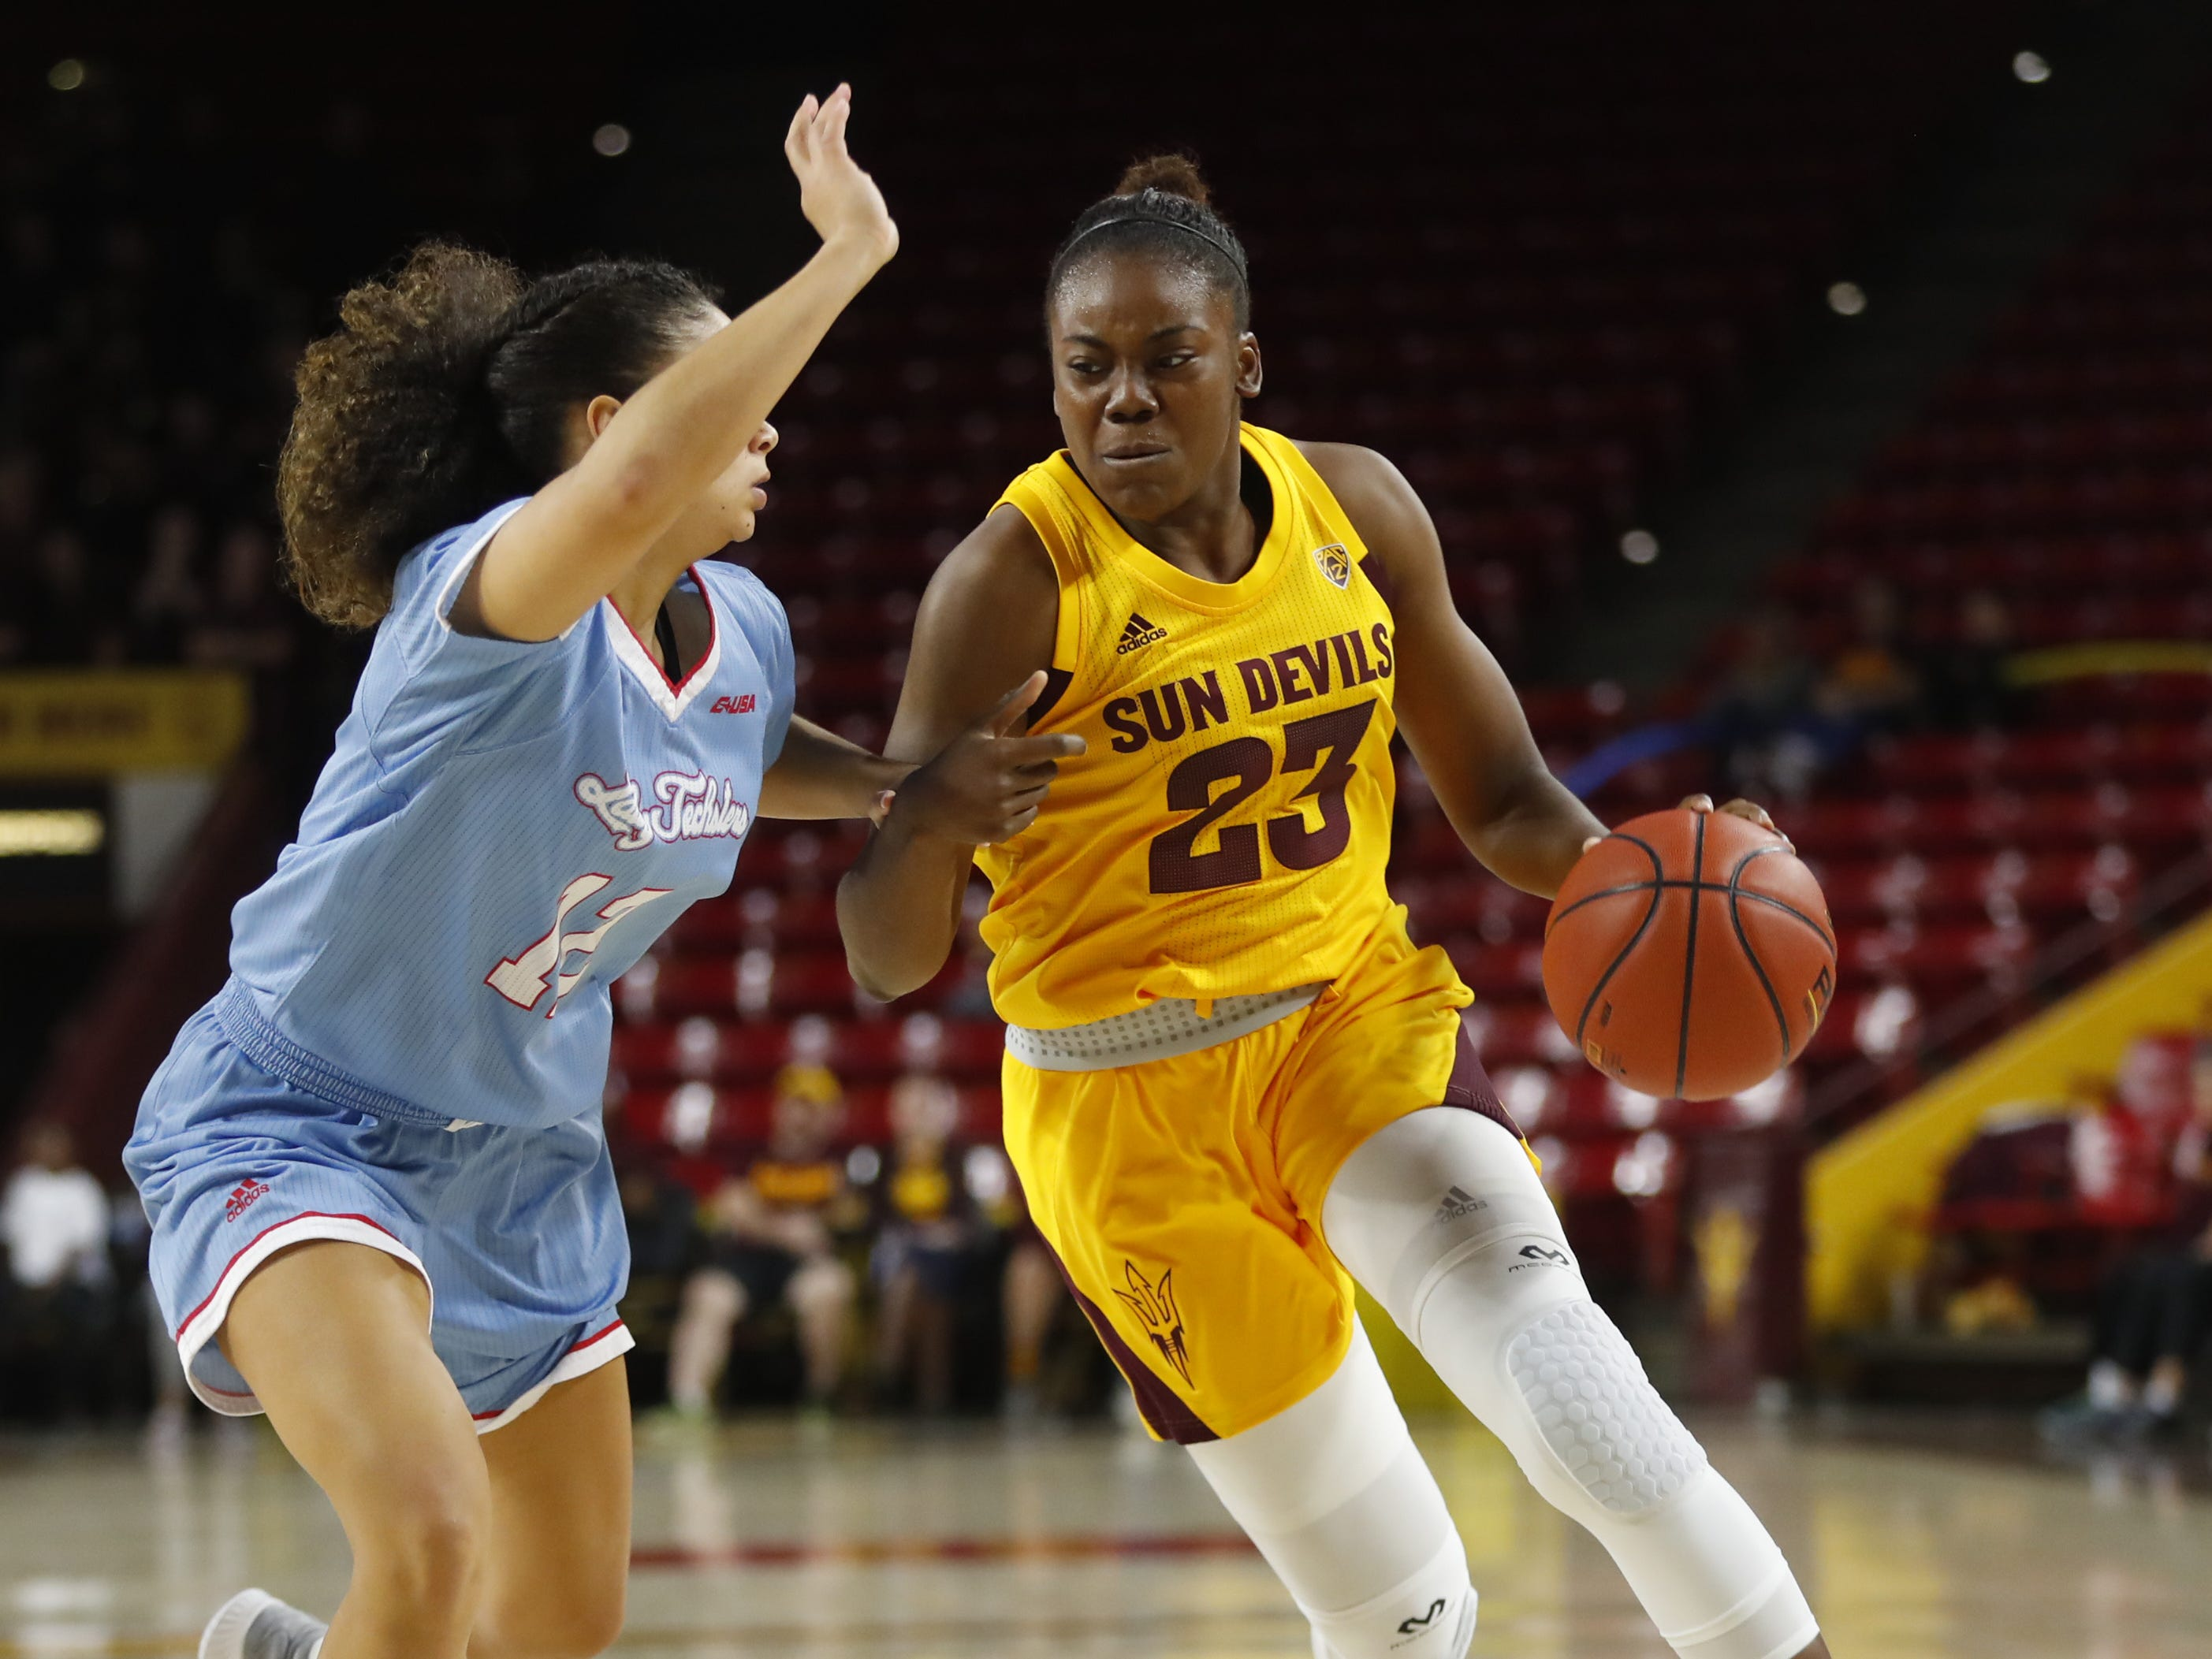 ASU's Iris Mbulito (23) drives against Louisiana Tech's Daria McCutcheon (12) during the second half at Wells Fargo Arena in Tempe, Ariz. on November 30, 2018.